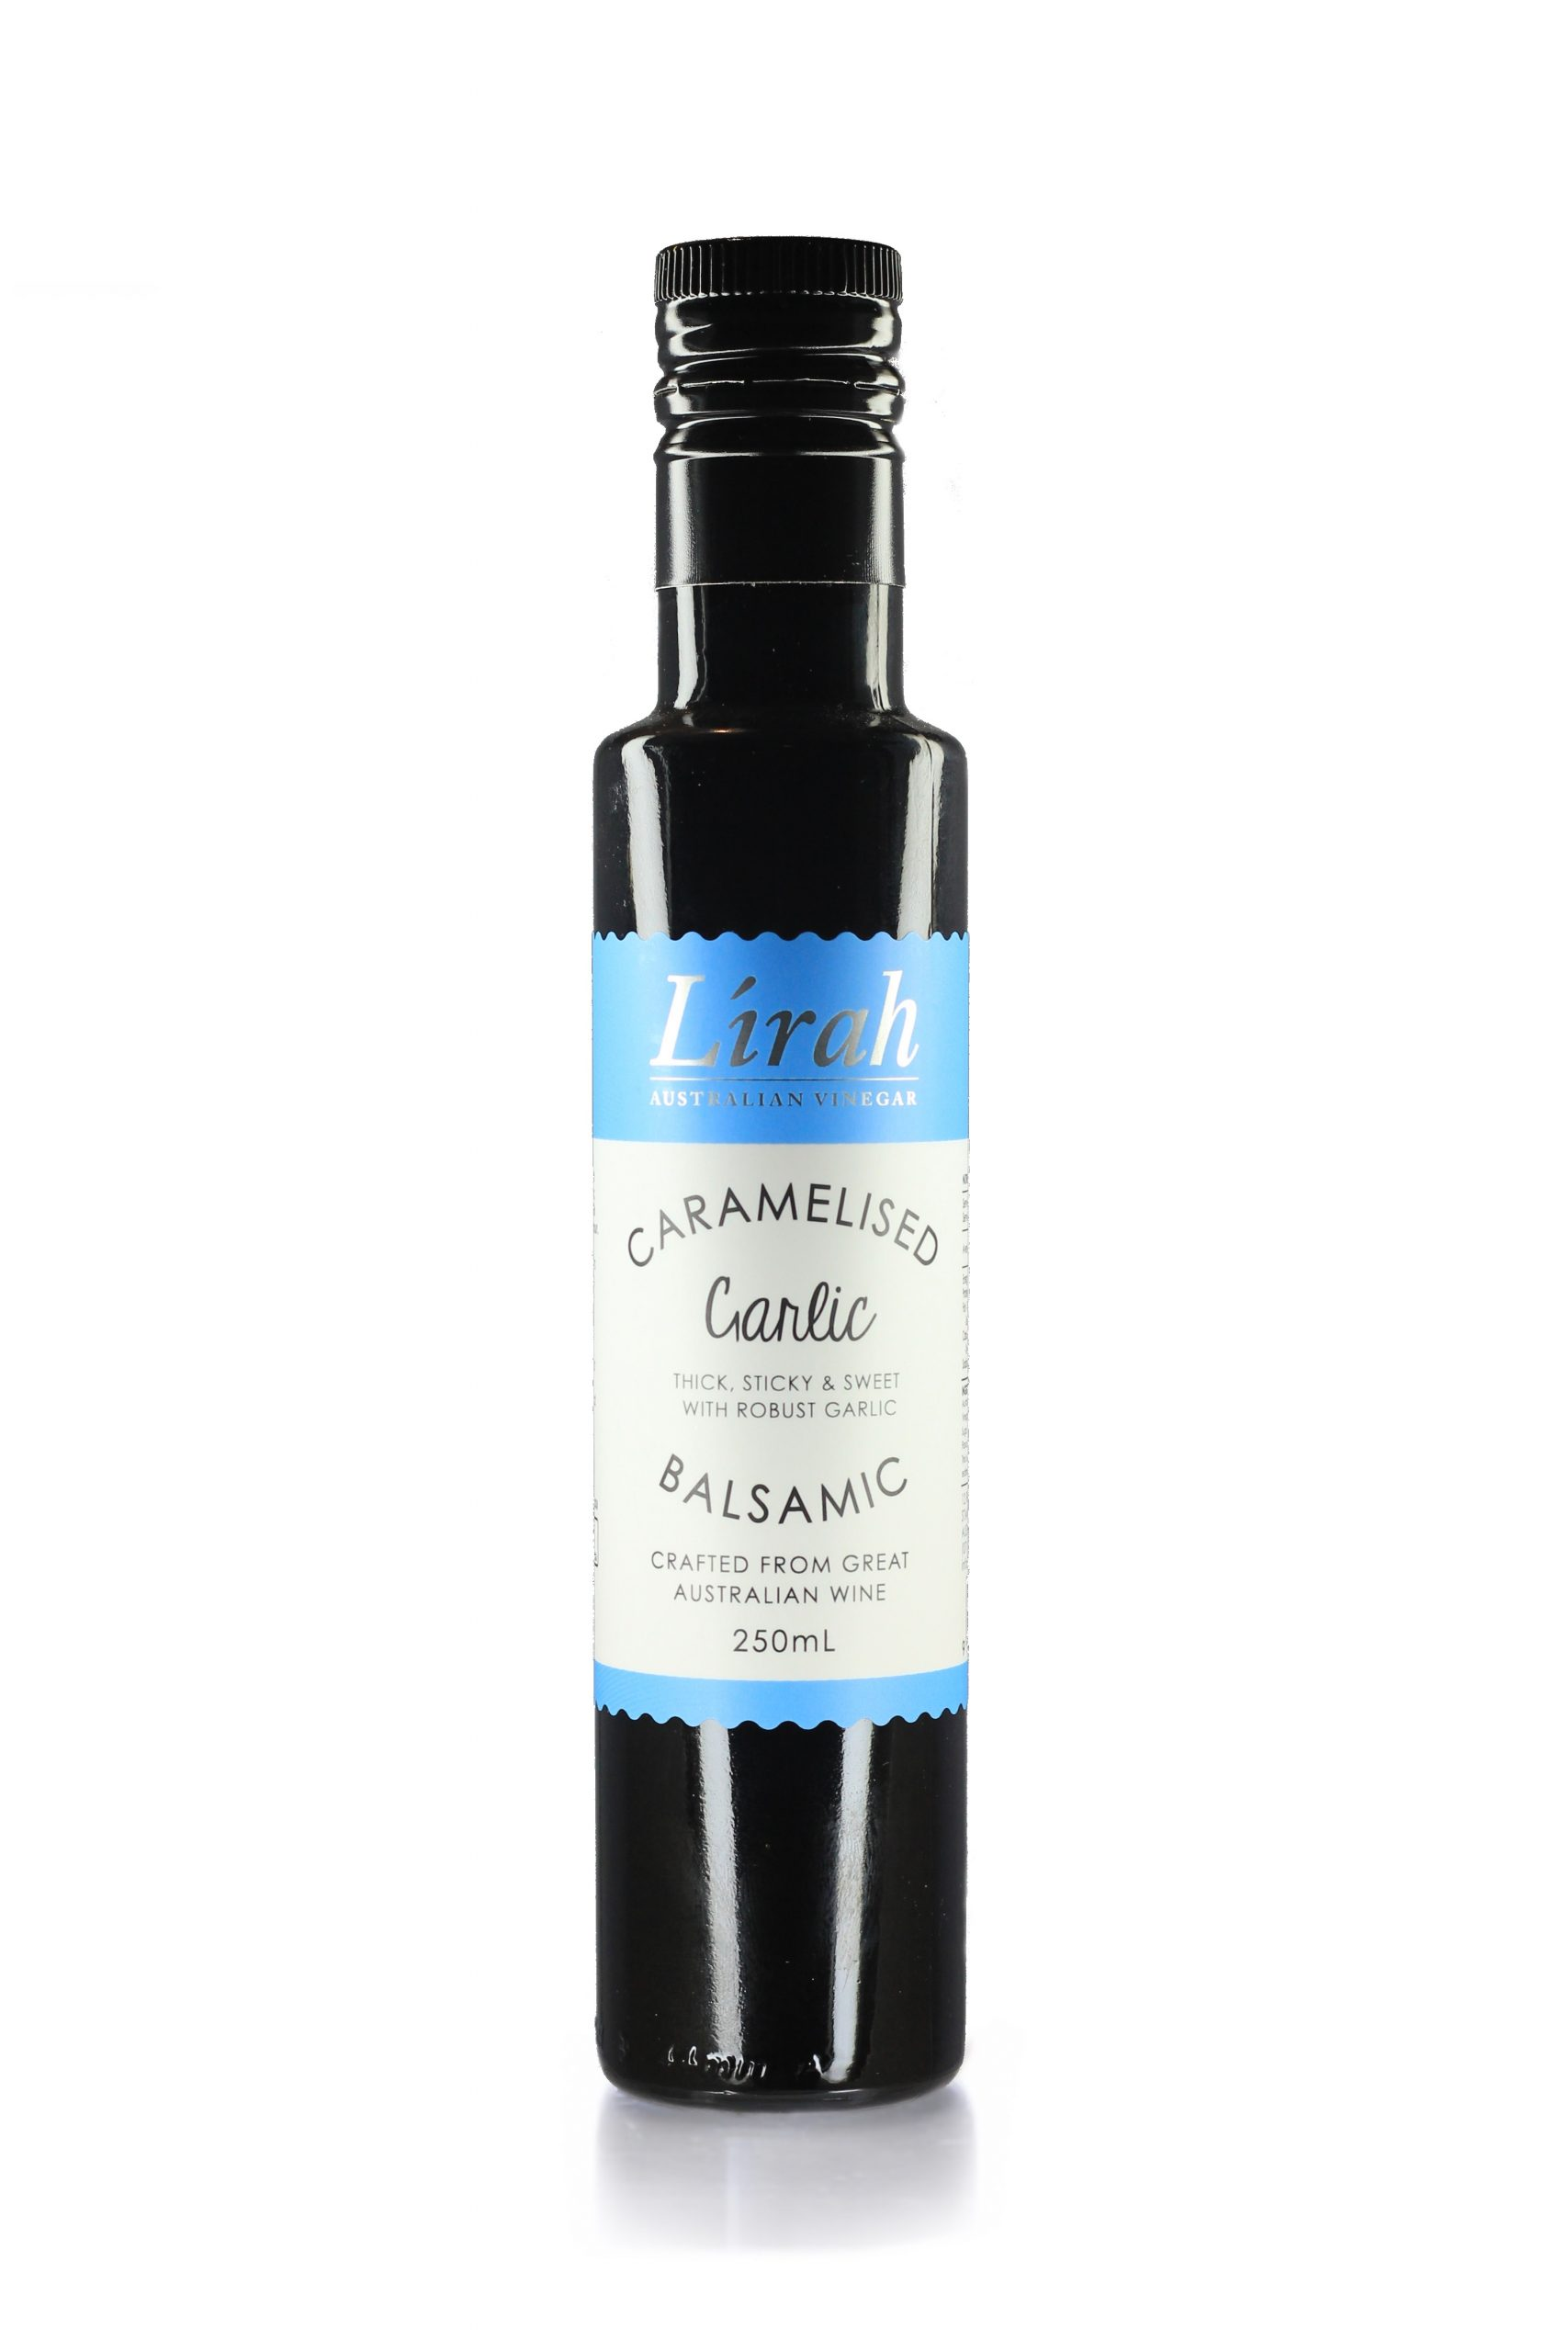 Caramelised Garlic Balsamic 250mL